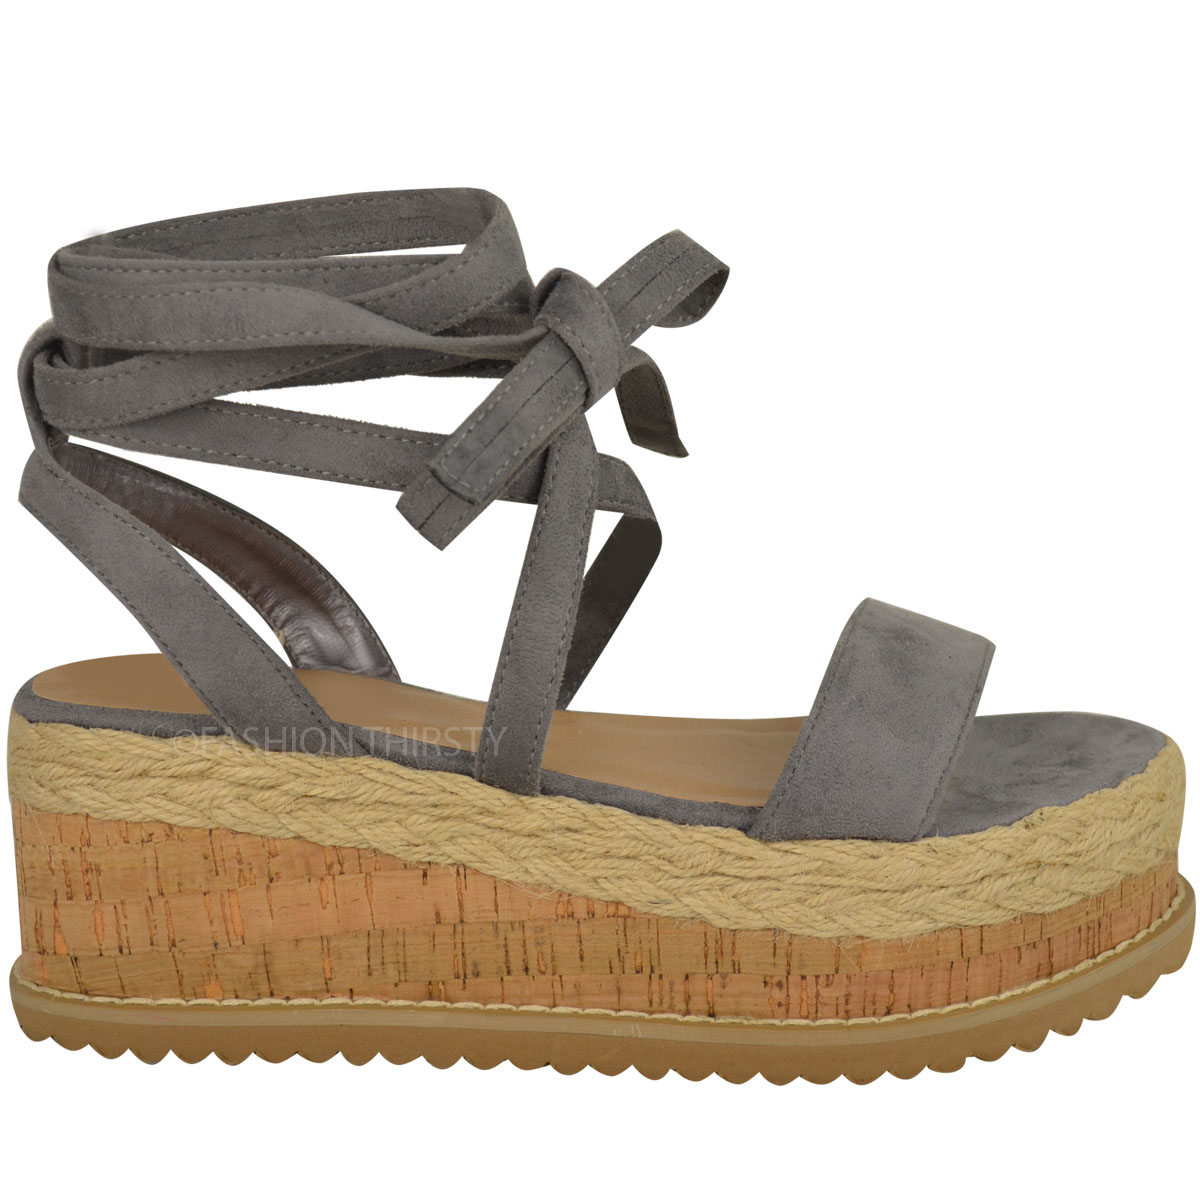 Popular Women39s 39Jude139 Ankle Strap Espadrille Wedge Sandals  Free Ship